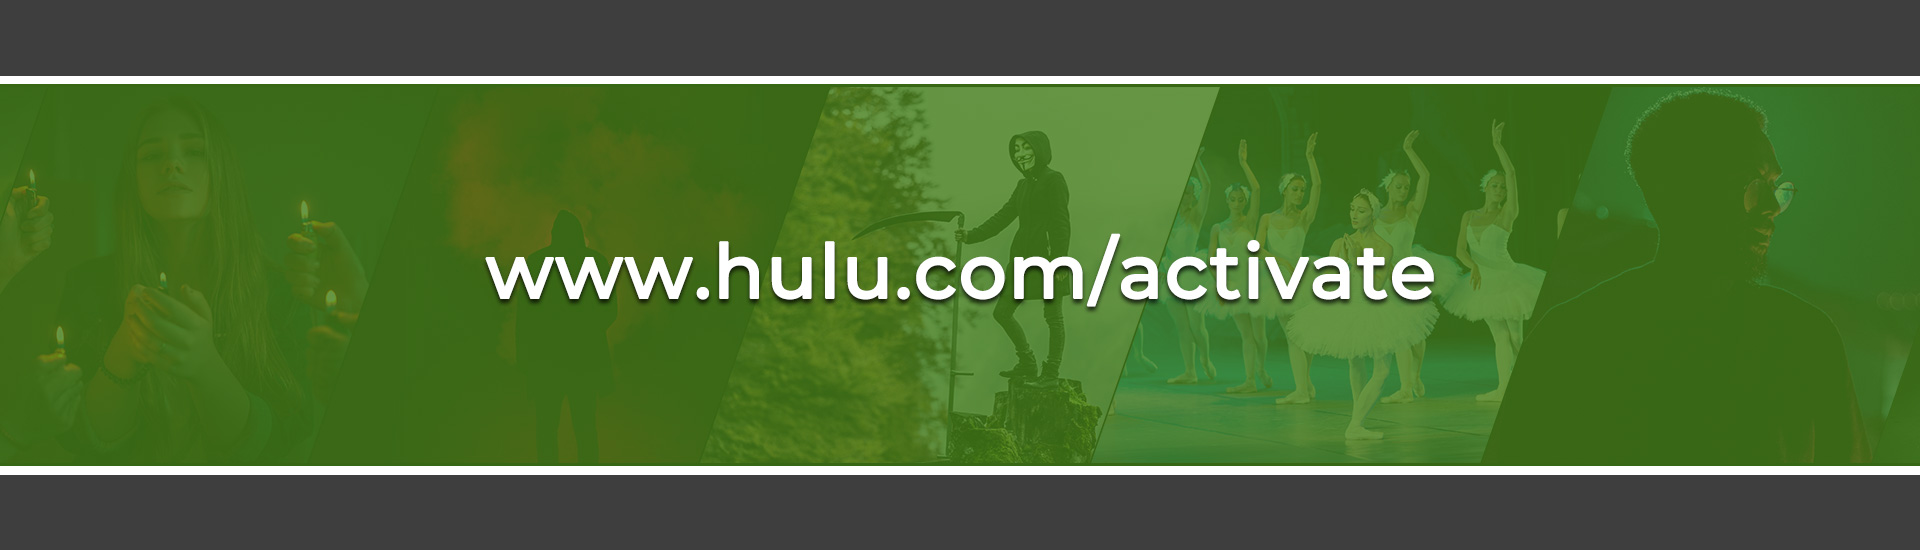 How do i activate hulu with hulu activation code? | Enter Hulu activation code